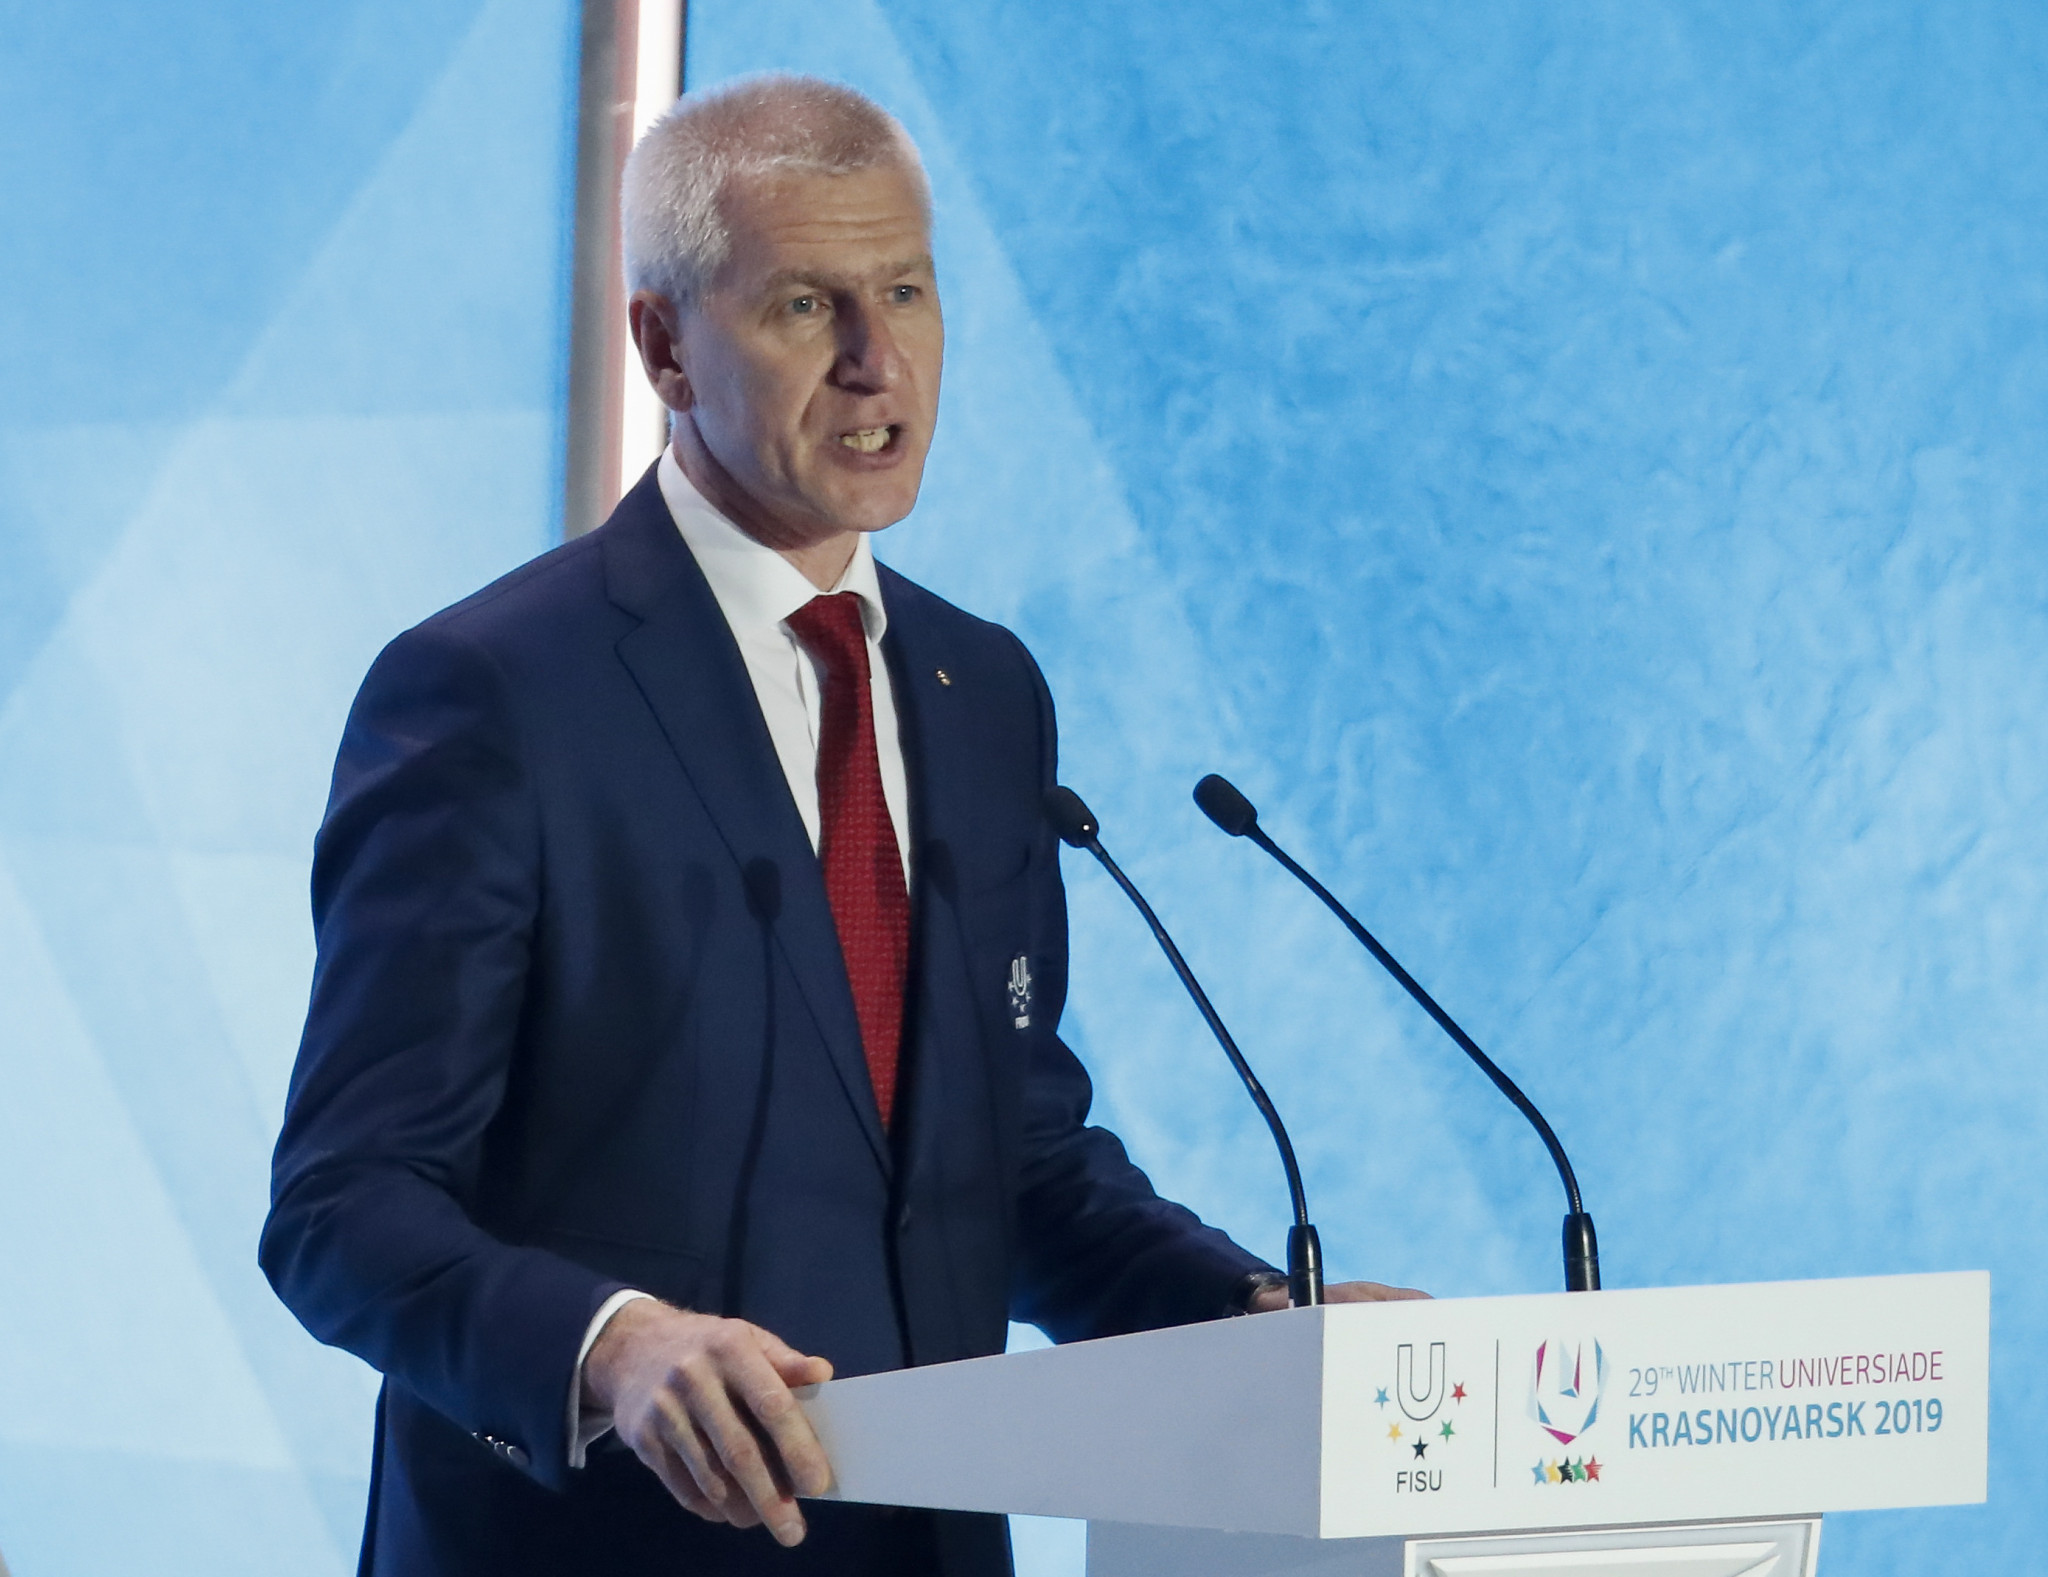 FISU President Oleg Matytsin confirmed interest from Pyeongchang in hosting a Winter Universiade ©Getty Images